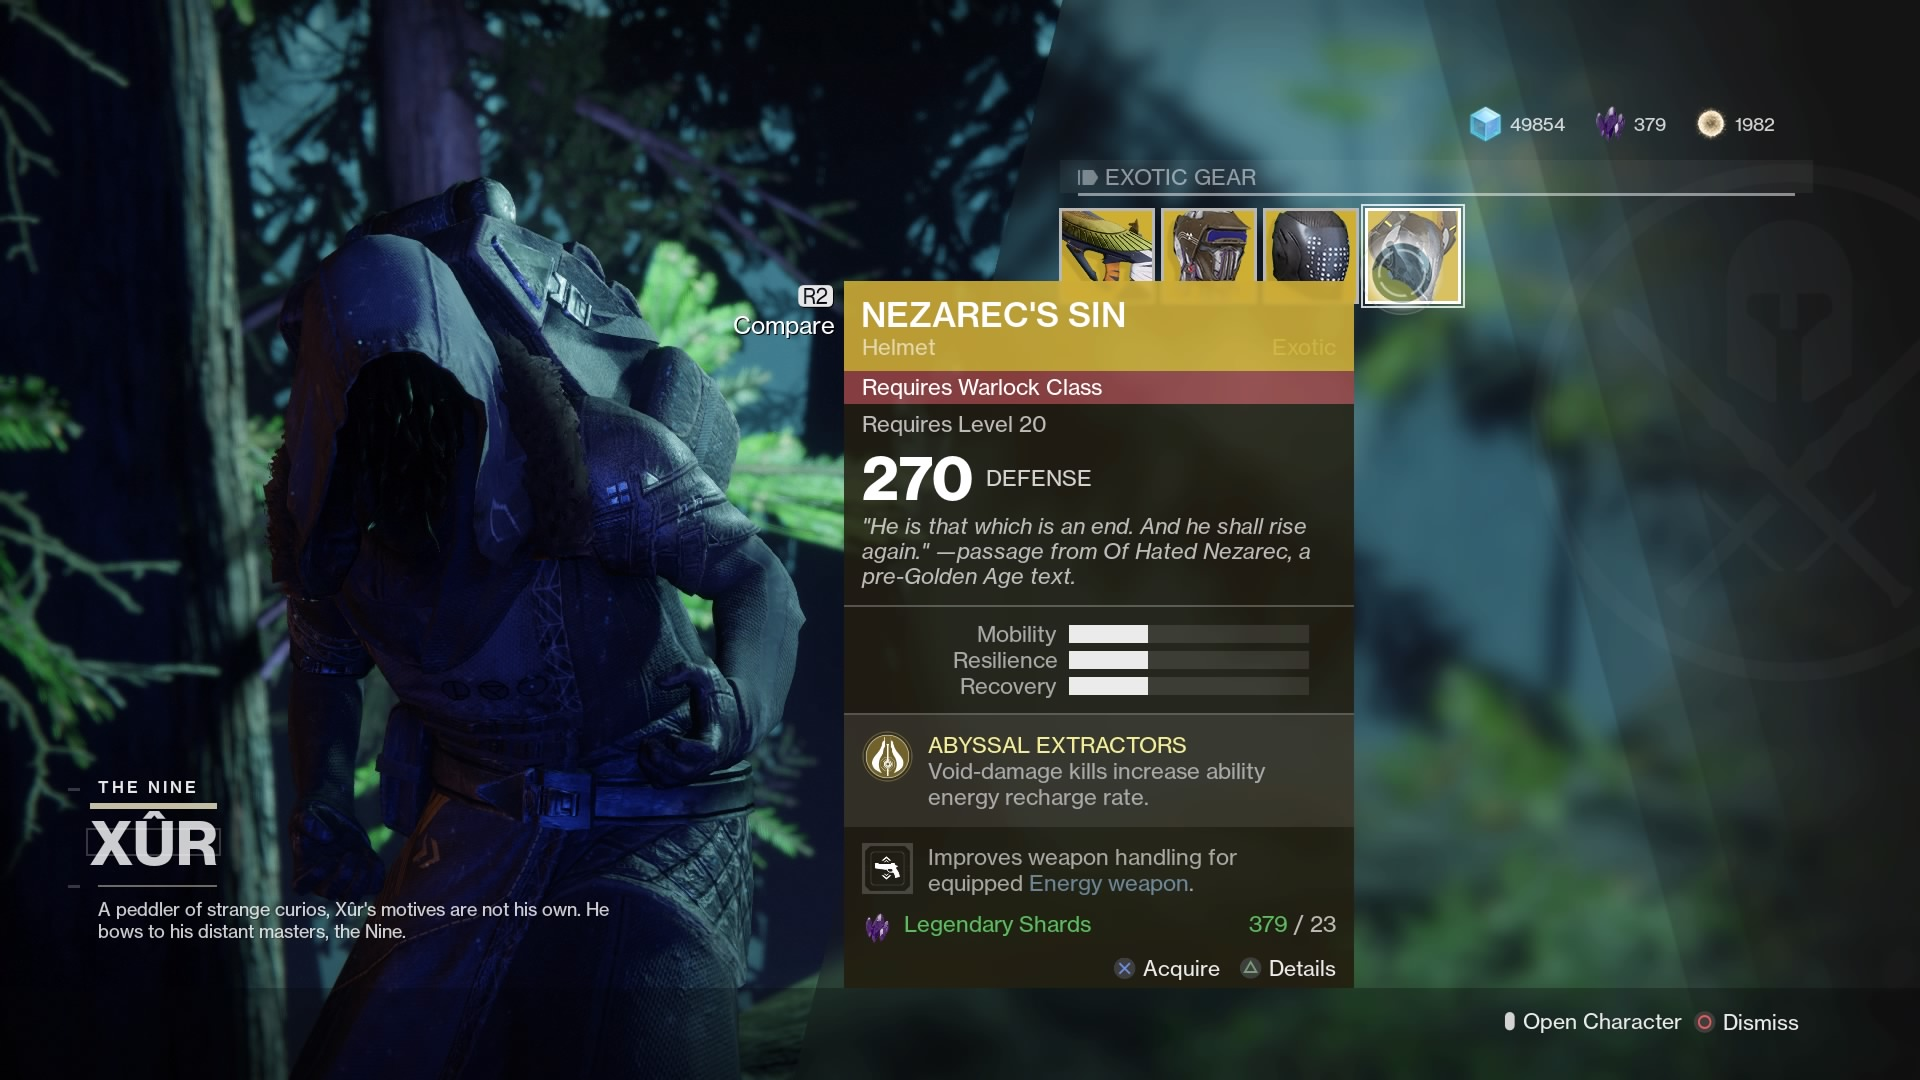 Destiny 2 Xur Location, Inventory for Oct 6-Oct 9, 2017